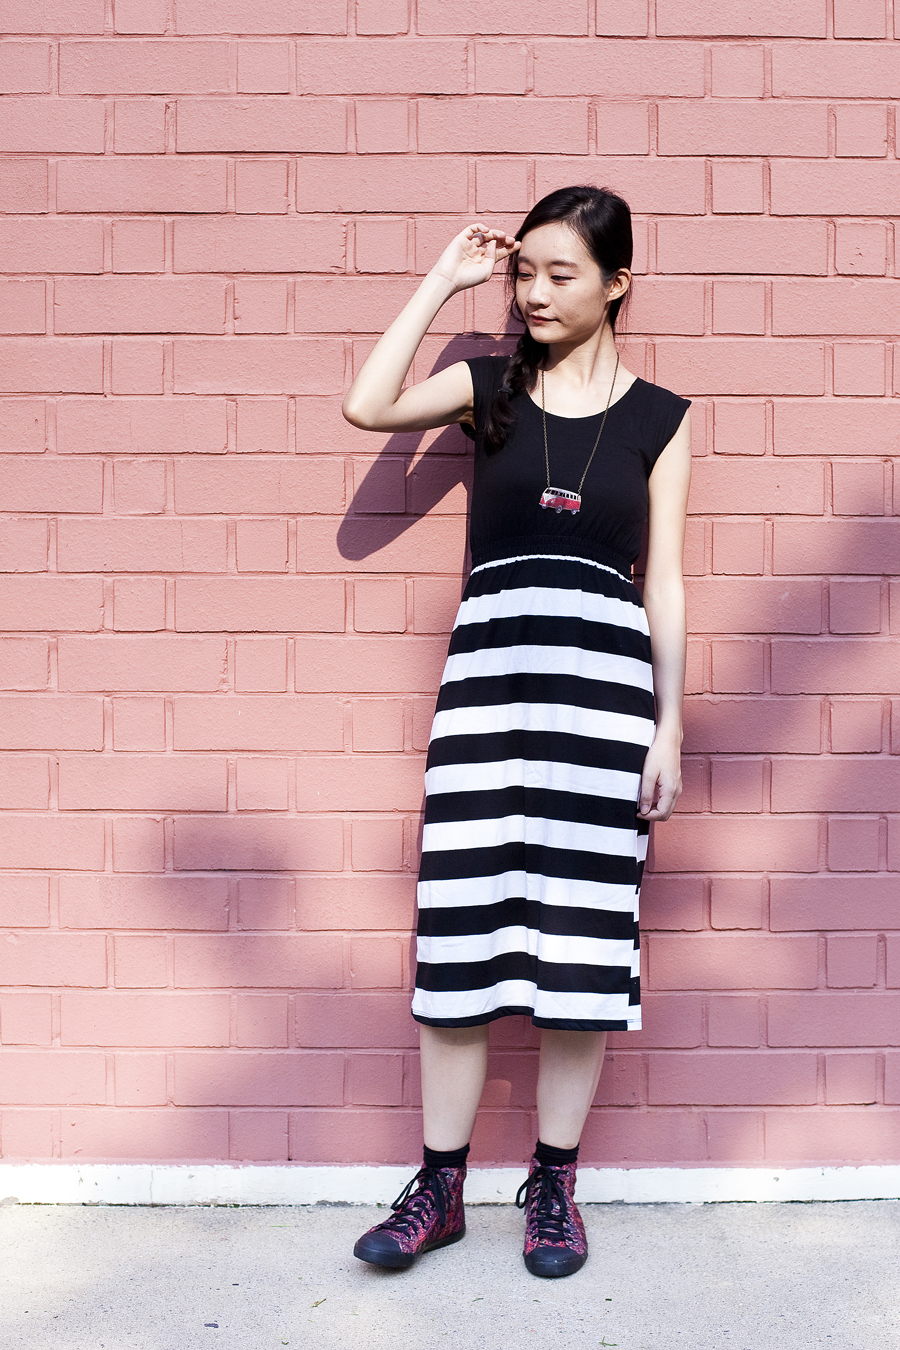 Flesh Imp striped dress, Taobao black socks, Puma McQ high top sneakers from Shopbop, red bus bronze necklace from Bugis Village.